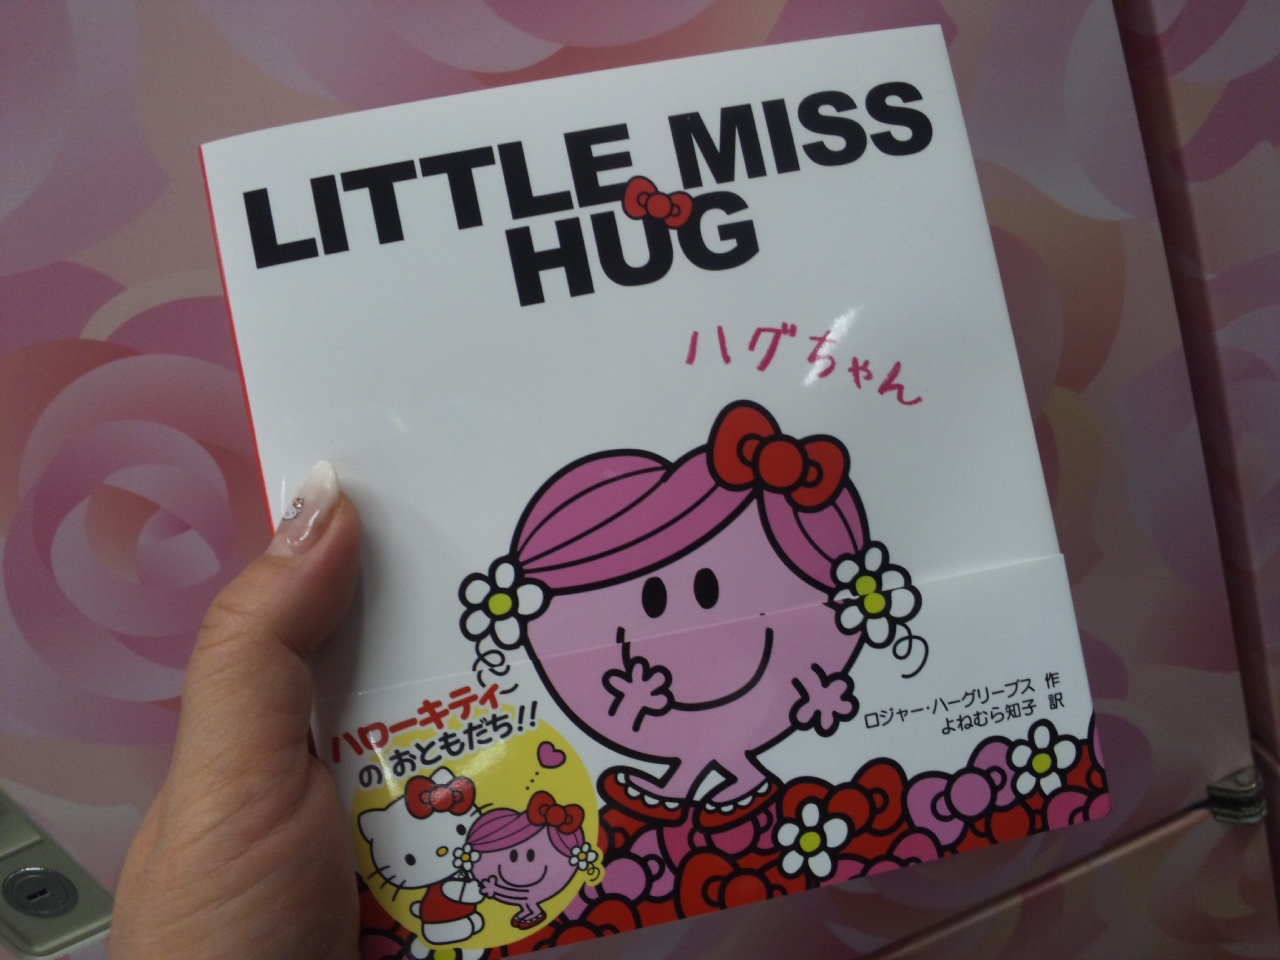 LITTLE MISS HUG!